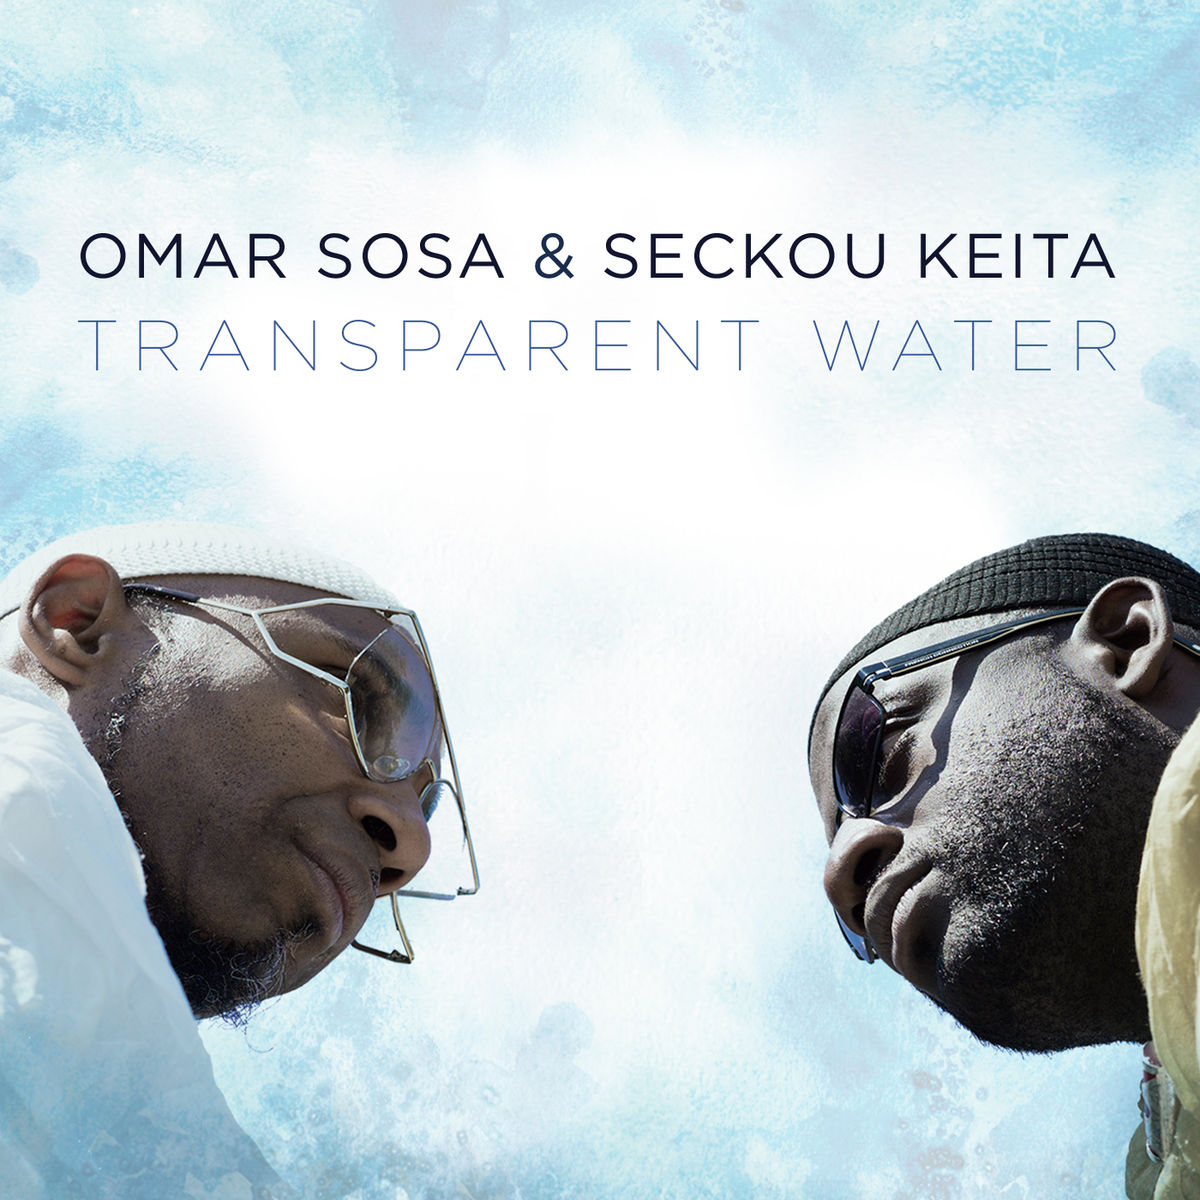 March 2017, Best Jazz Album: Transparent Water by Omar Sosa & Seckou Keita